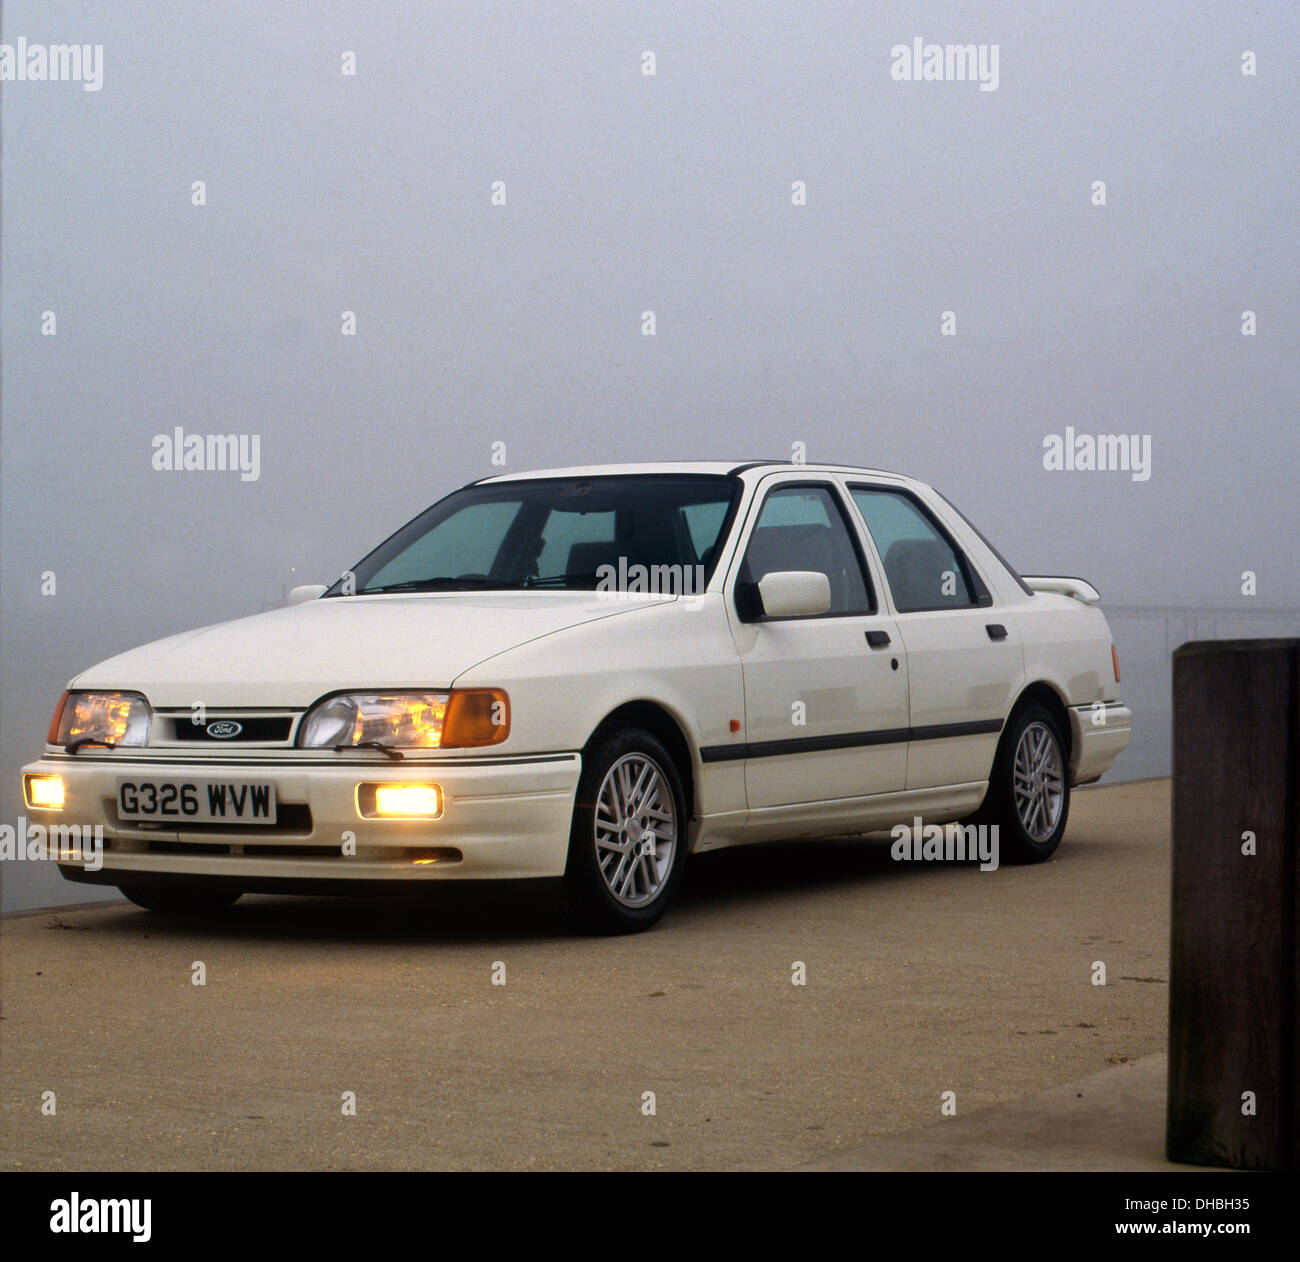 Ford Sierra Sapphire RS Cosworth 1989 Imagen De Stock